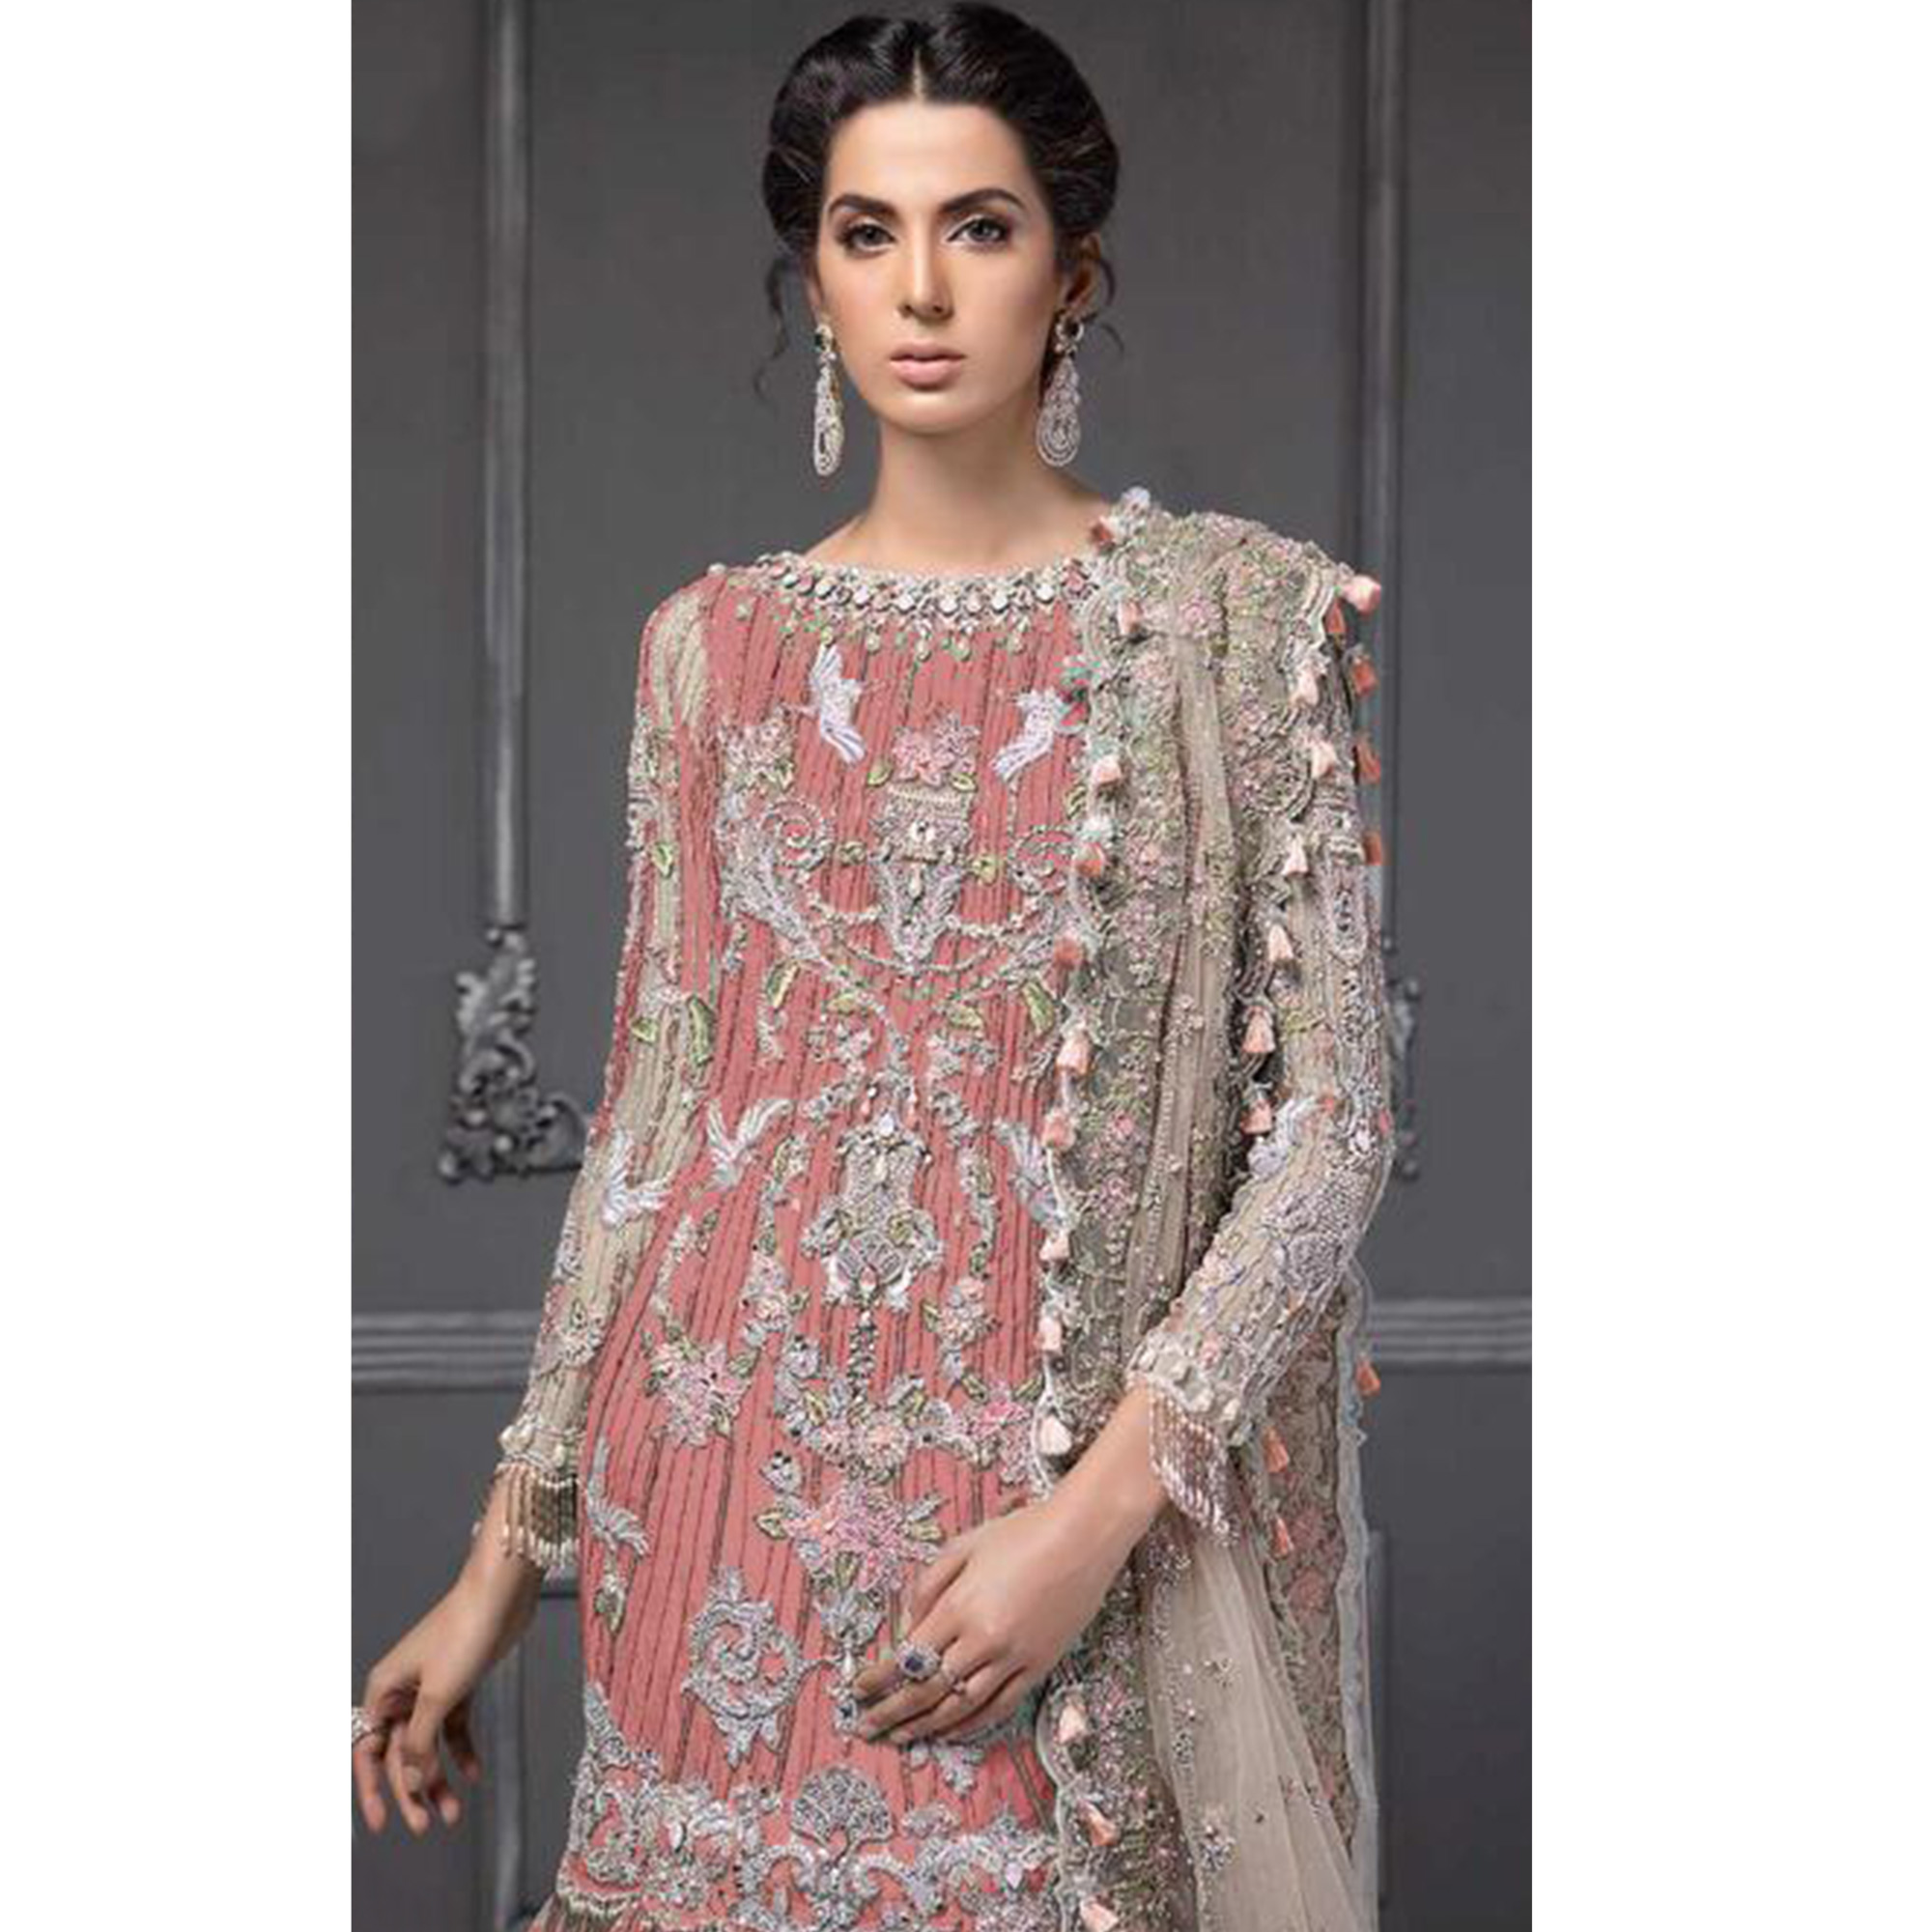 Exclusive Gajari Colored Partywear Embroidered Netted Lehenga Kameez